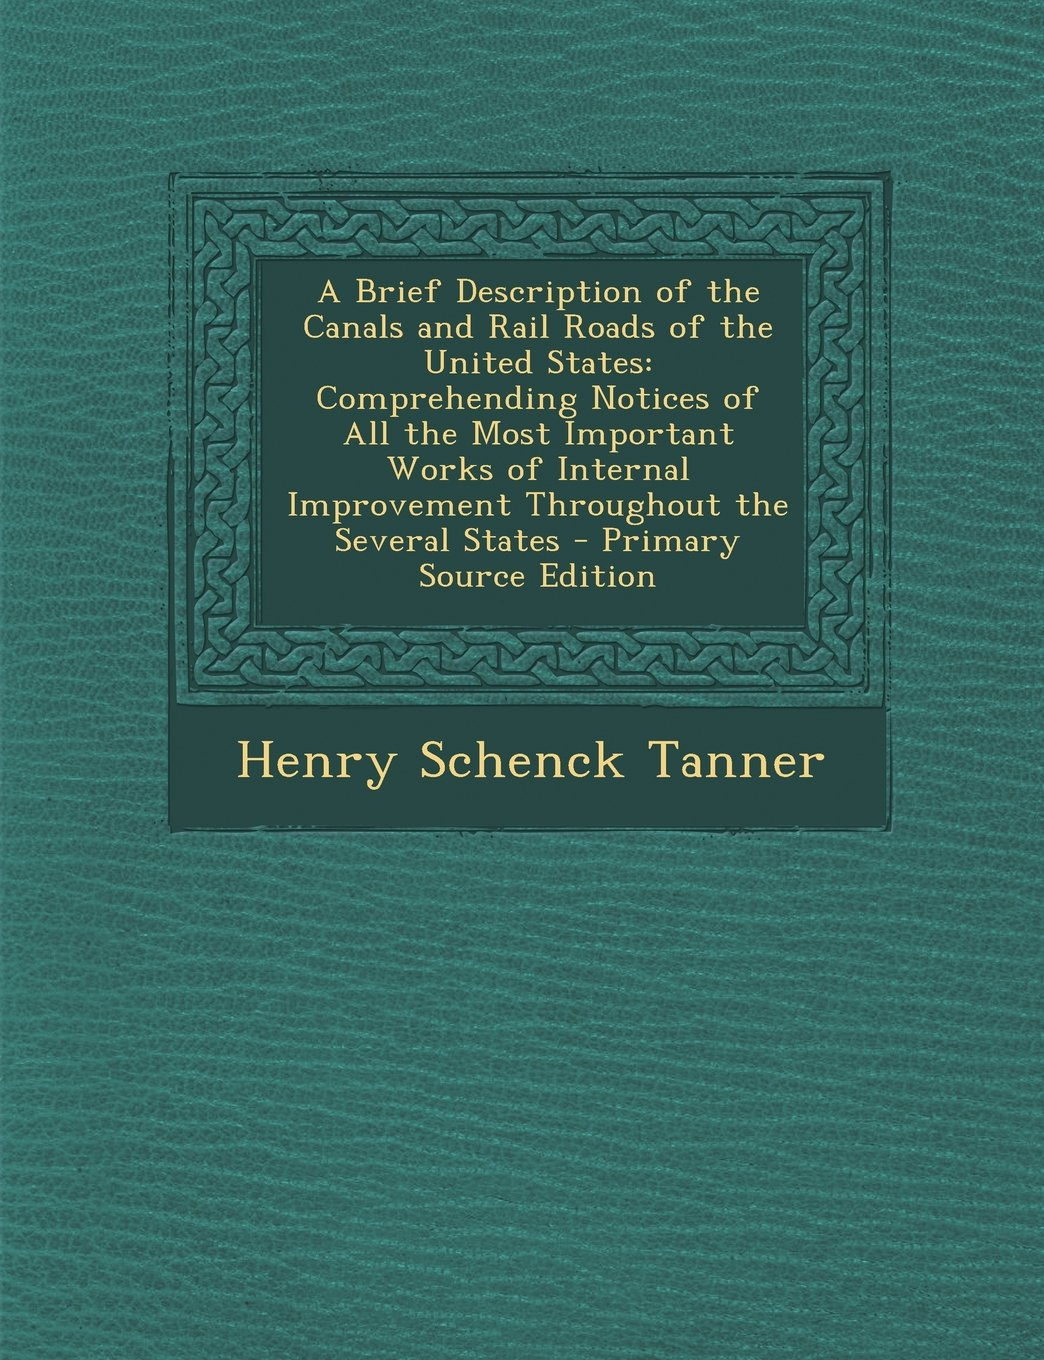 A Brief Description of the Canals and Rail Roads of the United States: Comprehending Notices of All the Most Important Works of Internal Improvement ... the Several States - Primary Source Edition PDF